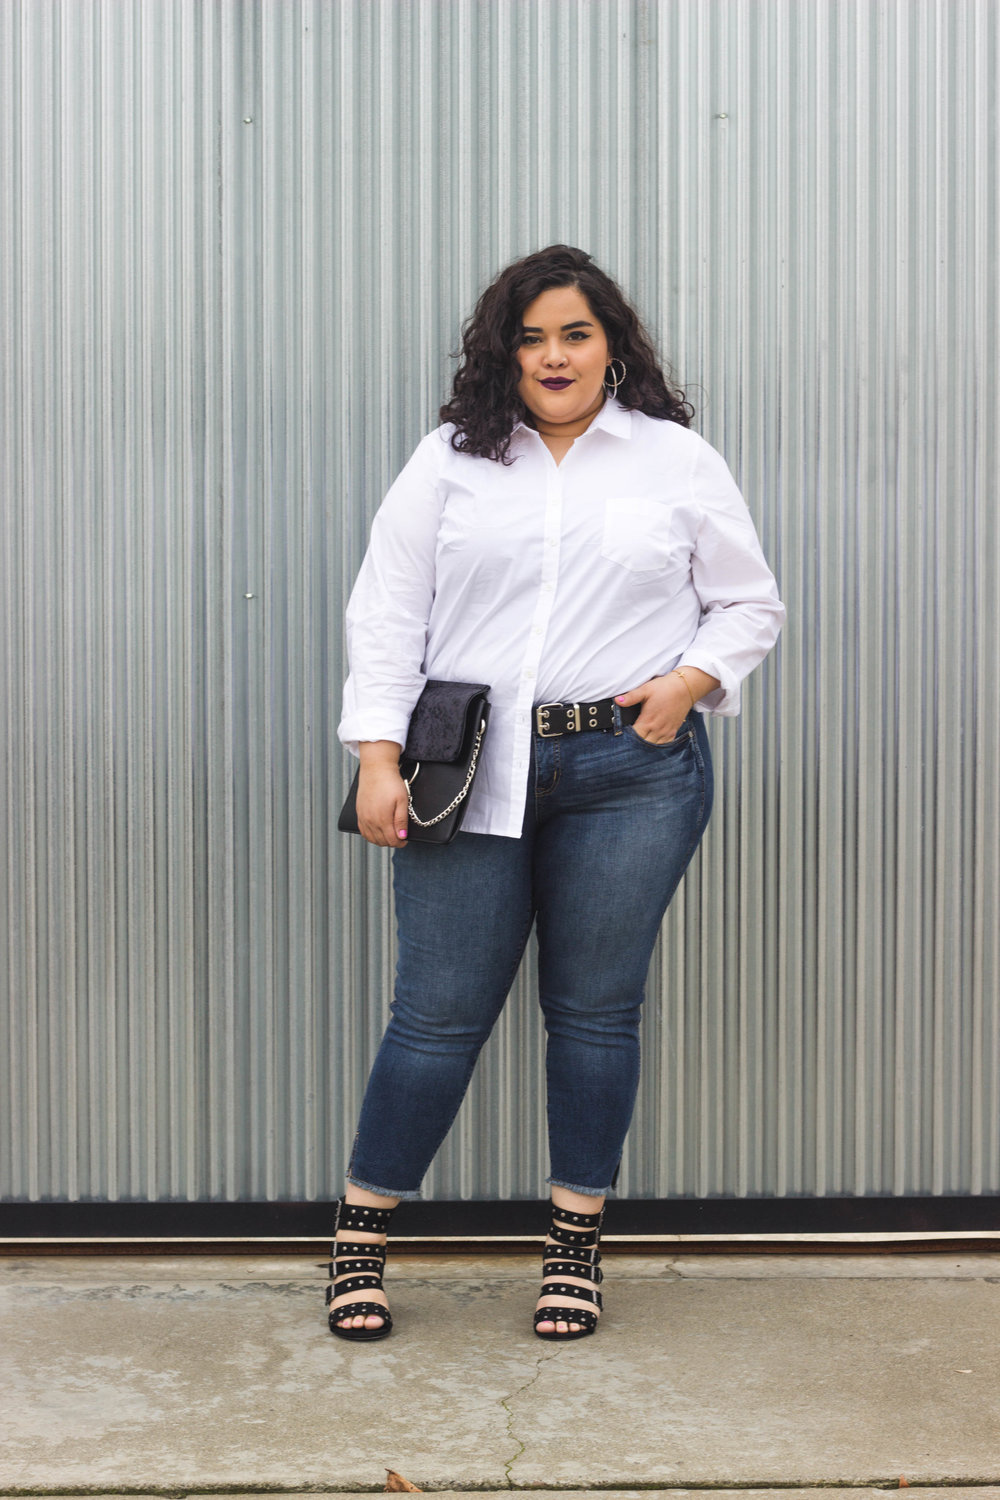 TorridTop1Way (4 of 119).jpg